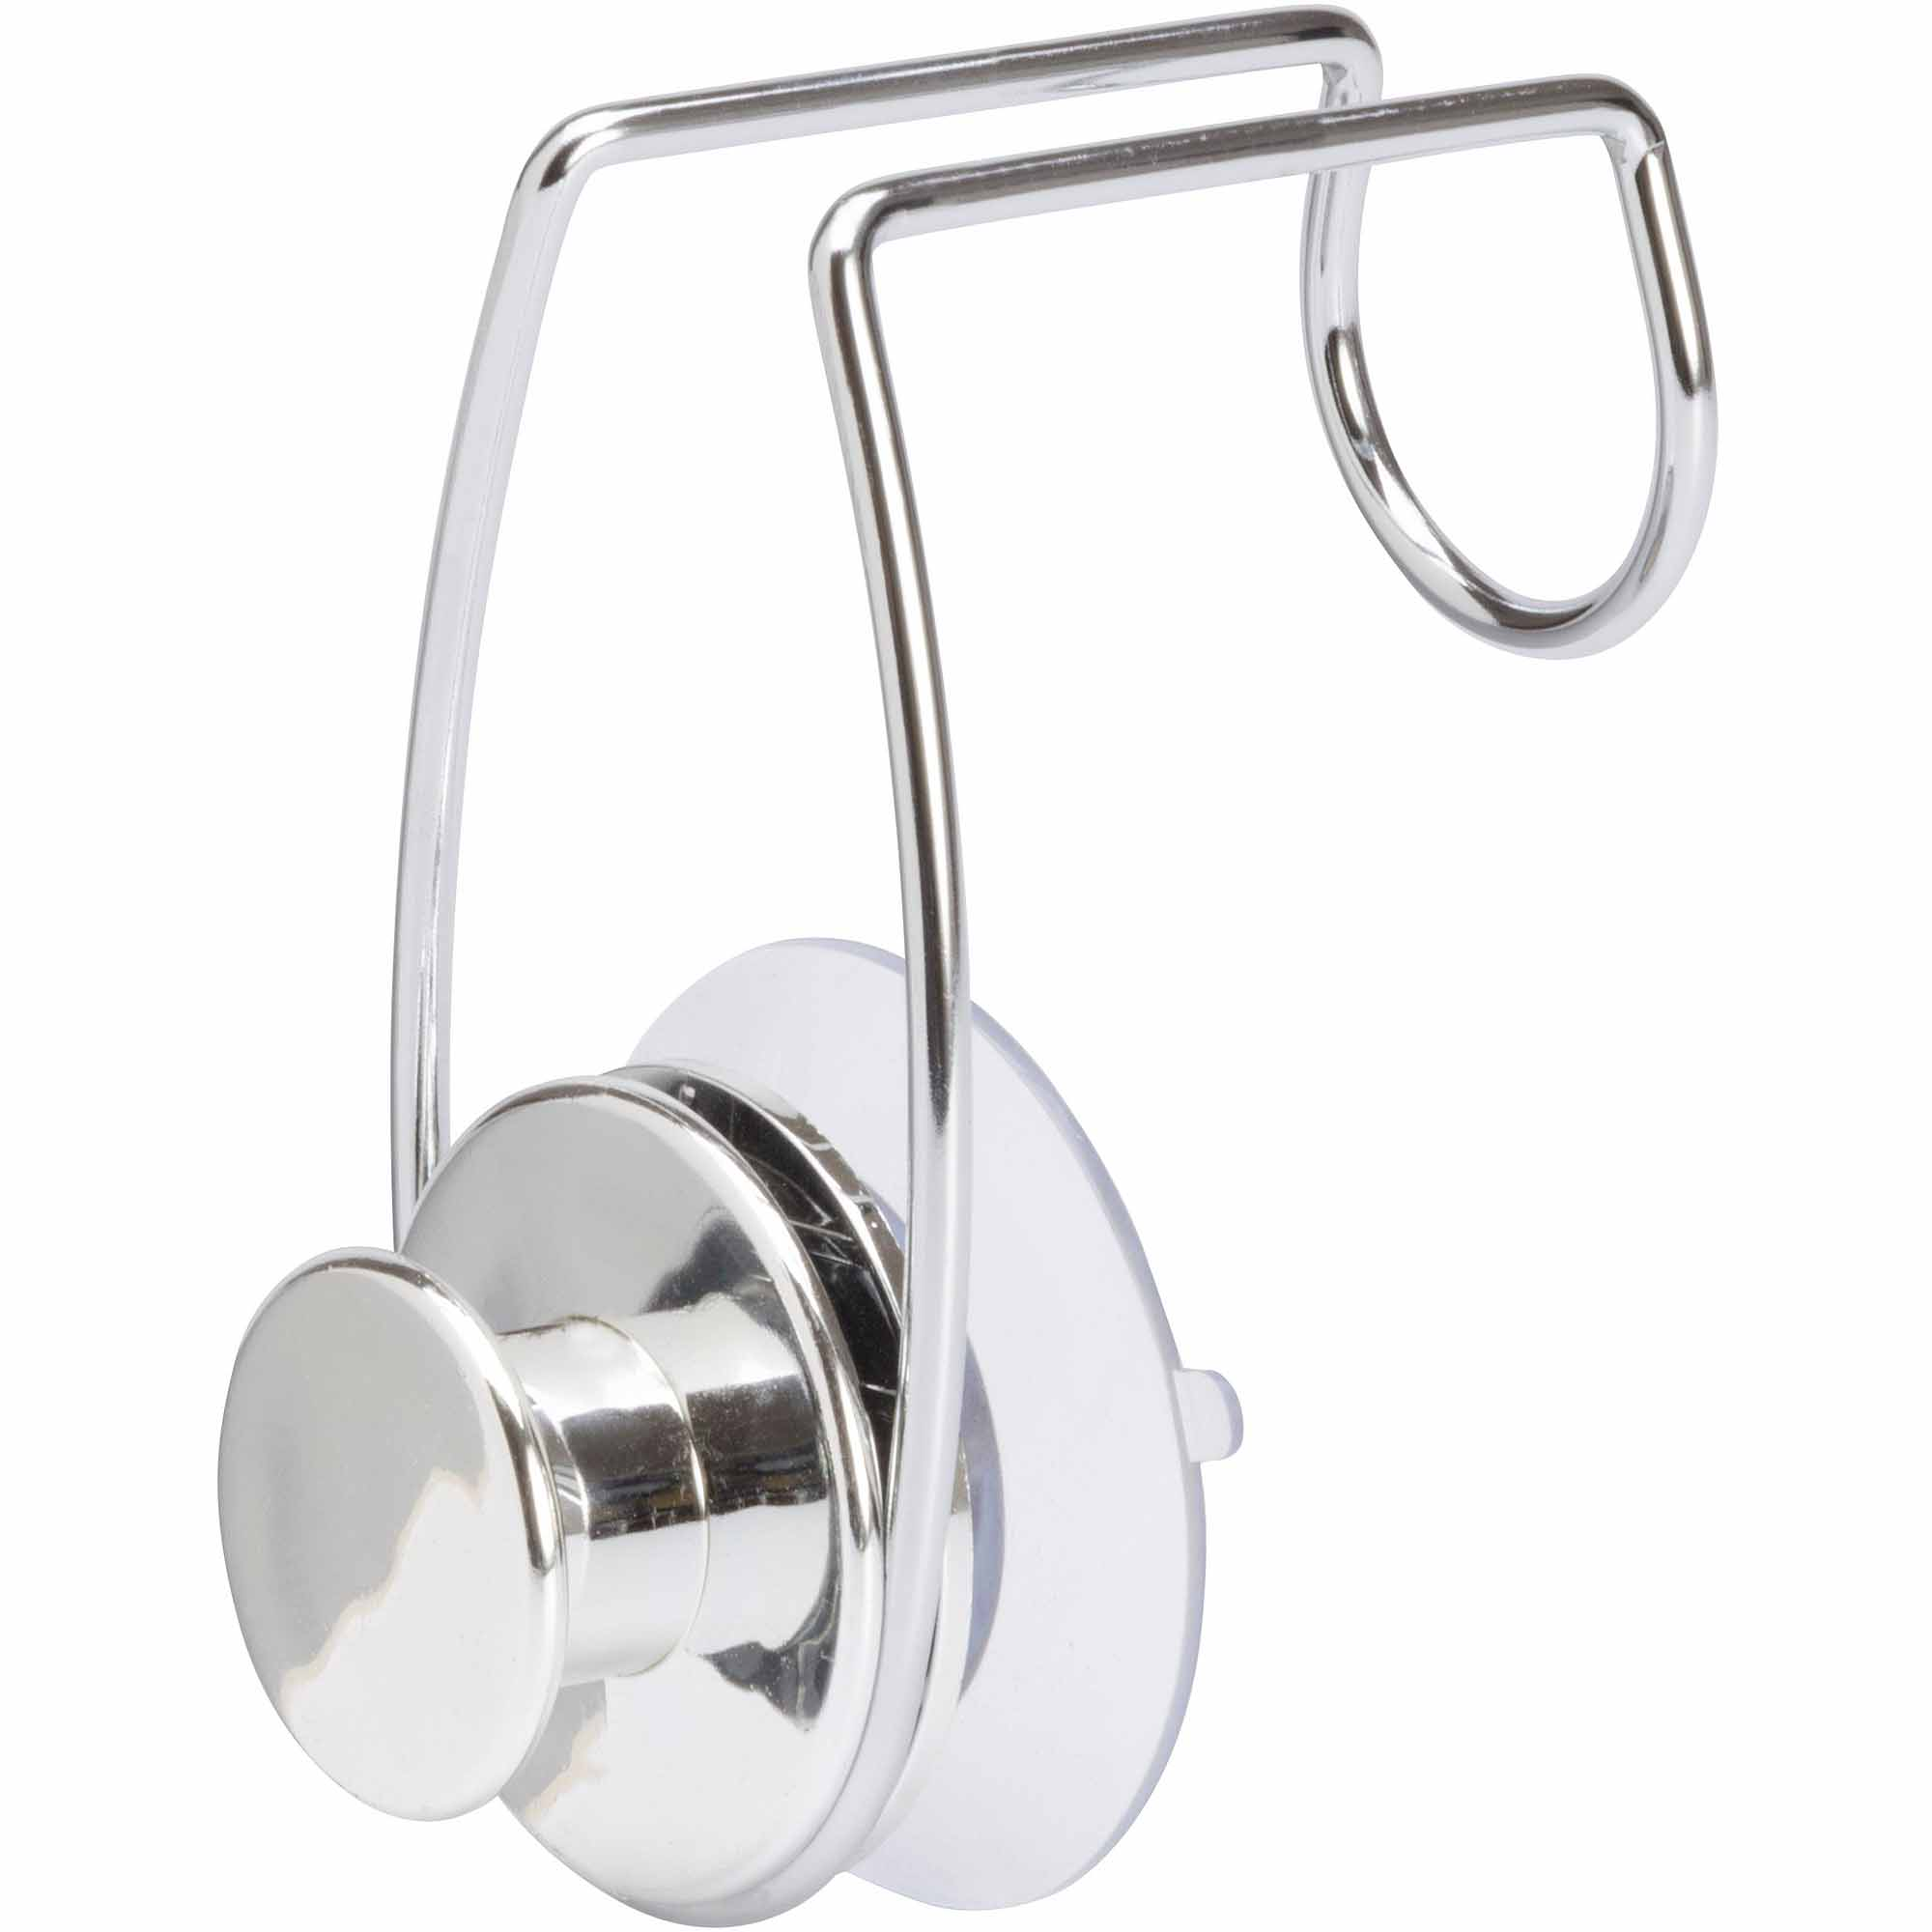 Mainstays Over-The-Door Caddy Hook, Chrome - Walmart.com